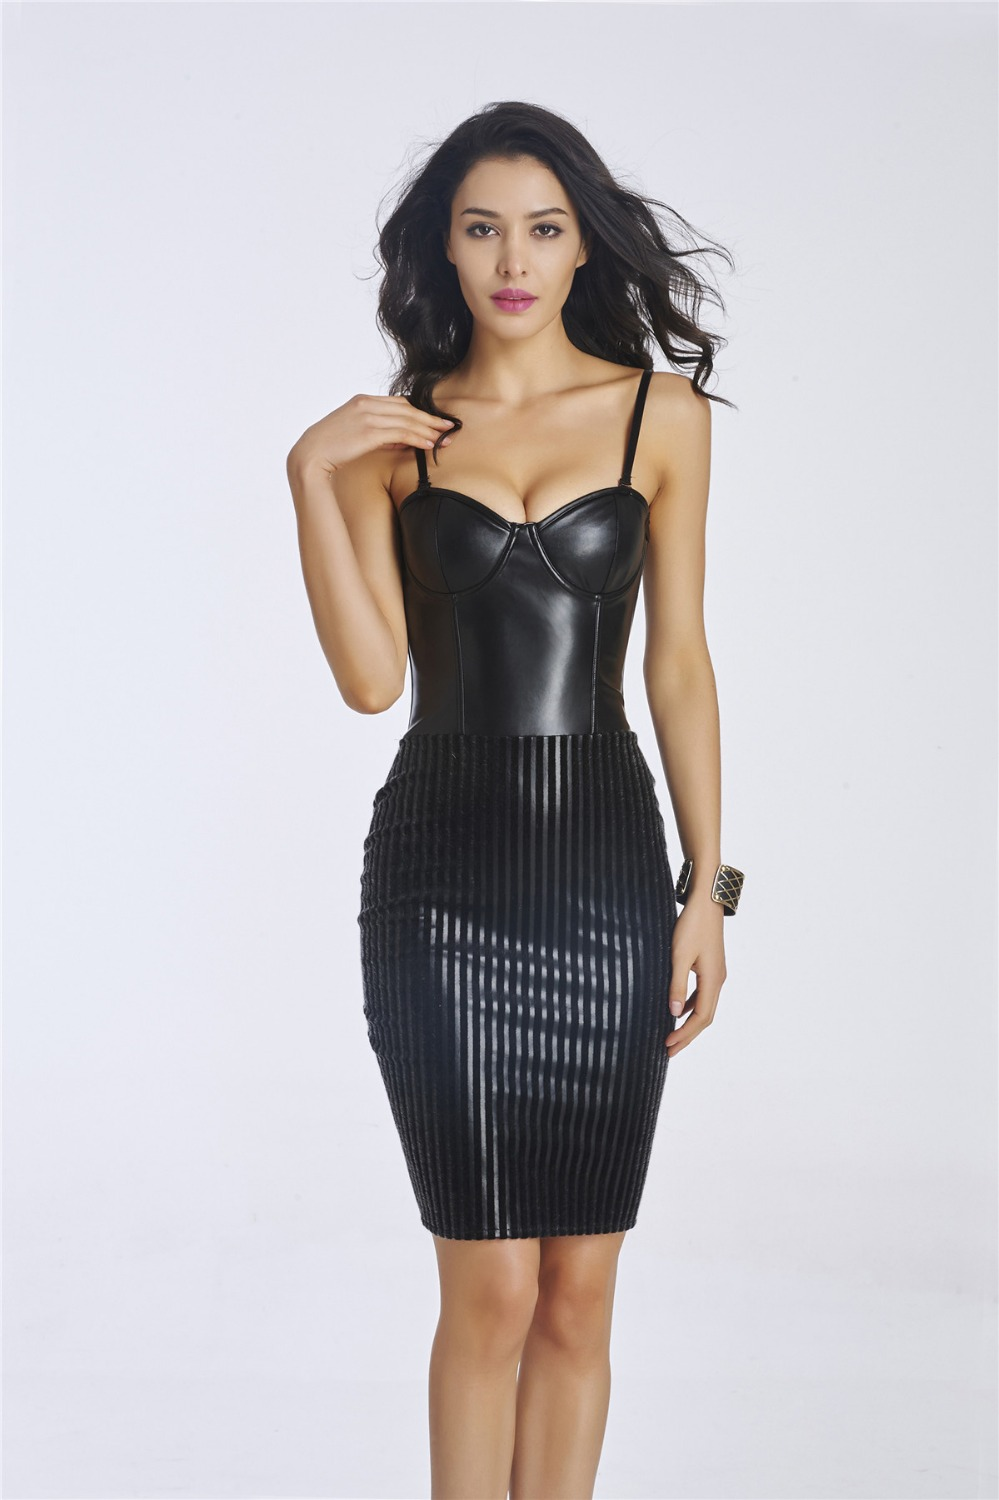 Black dress office - Sexy Black Leather Slim Fit Corset Style Formal Office Lady Dress China Mainland